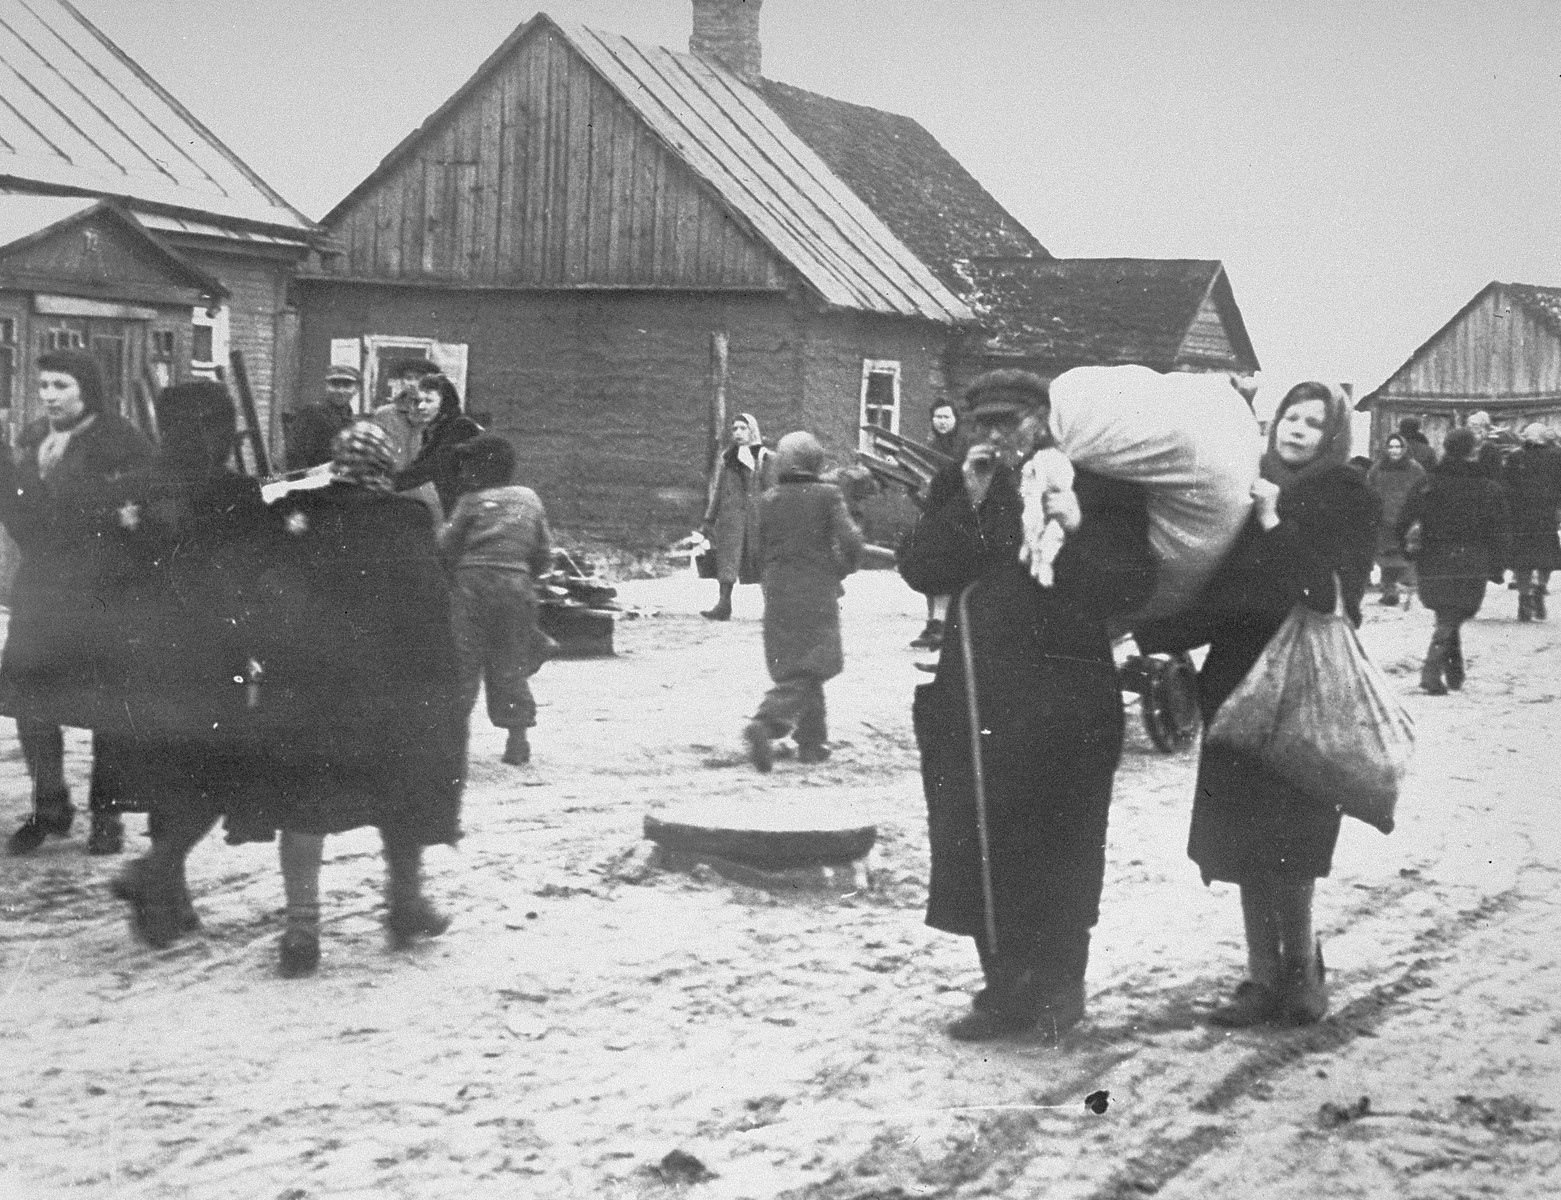 Jews move their household belongings into the Kovno ghetto.  [oversized photo]